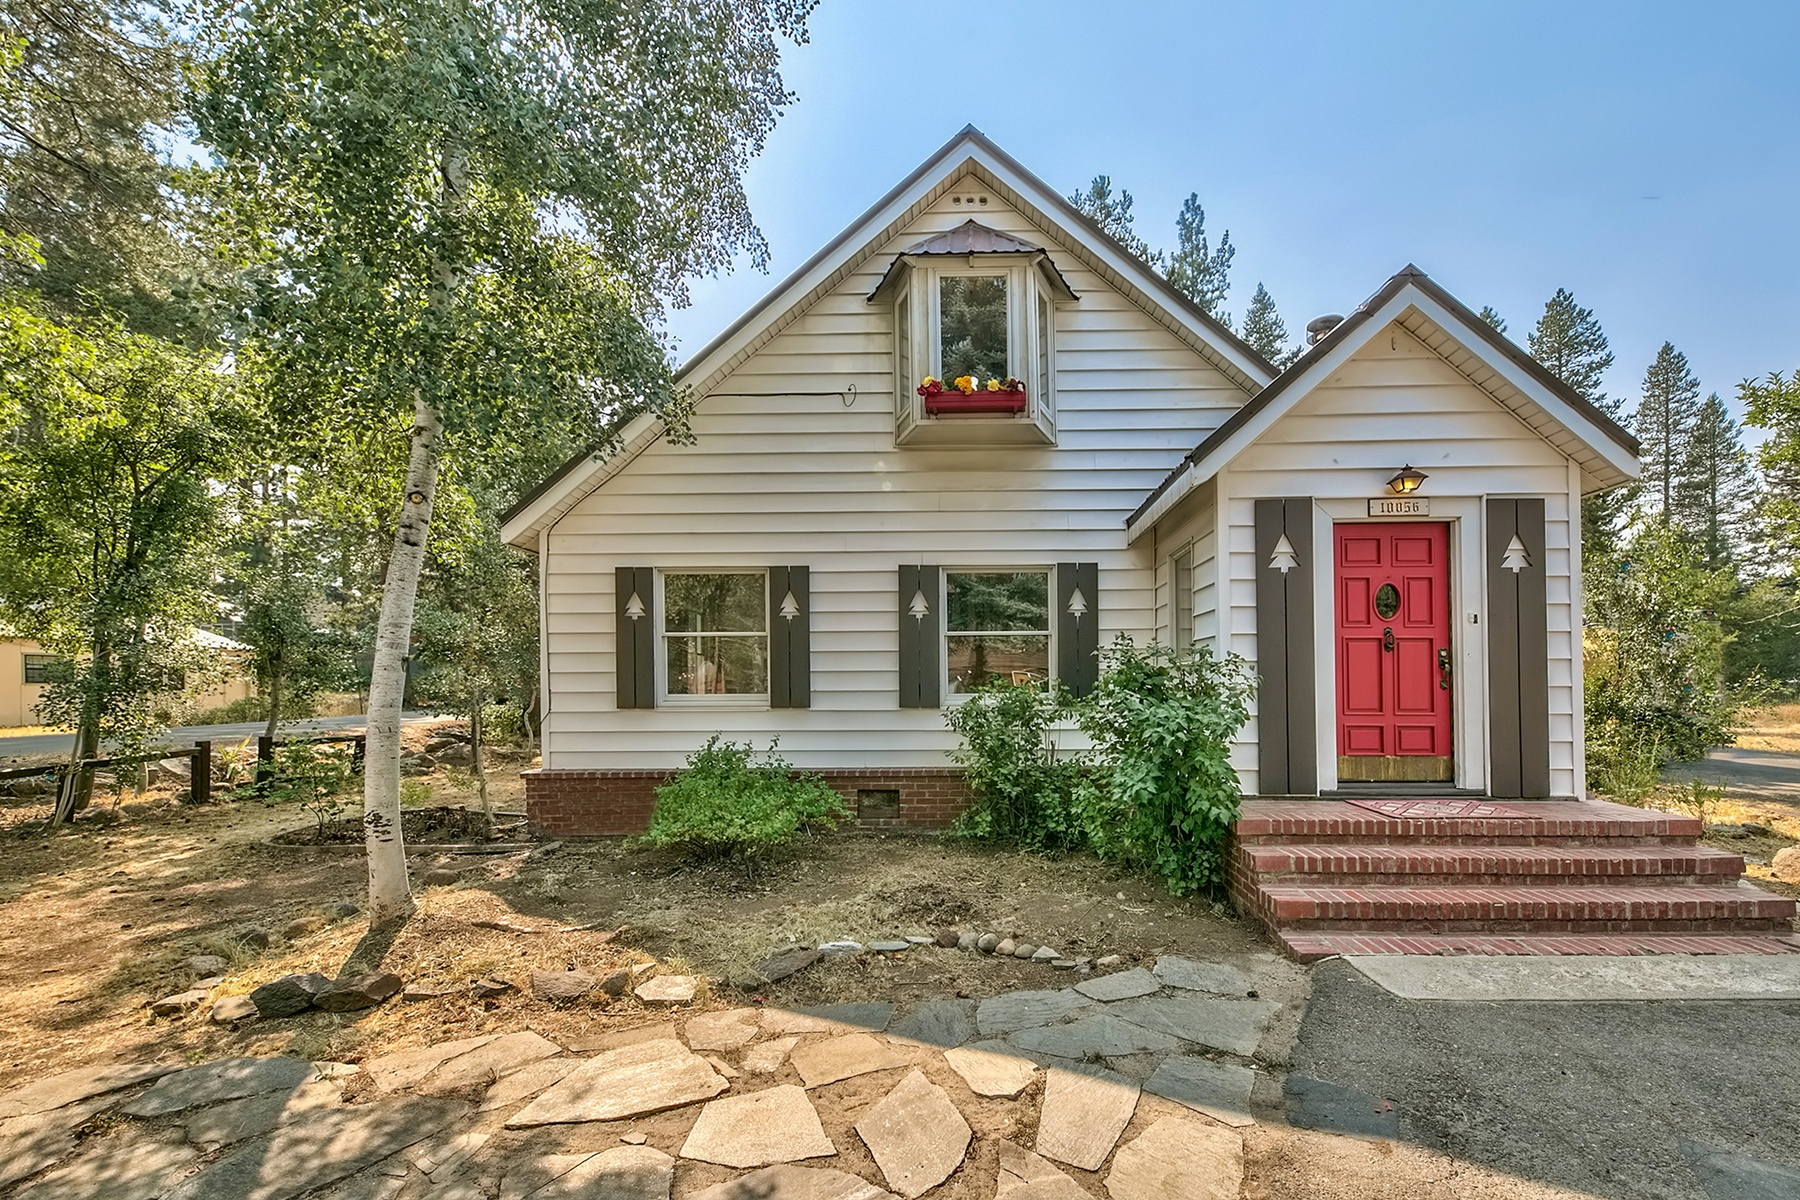 Single Family Home for Active at 10056 Sierra Avenue, Truckee CA 96161 10056 Sierra Avenue Truckee, California 96161 United States